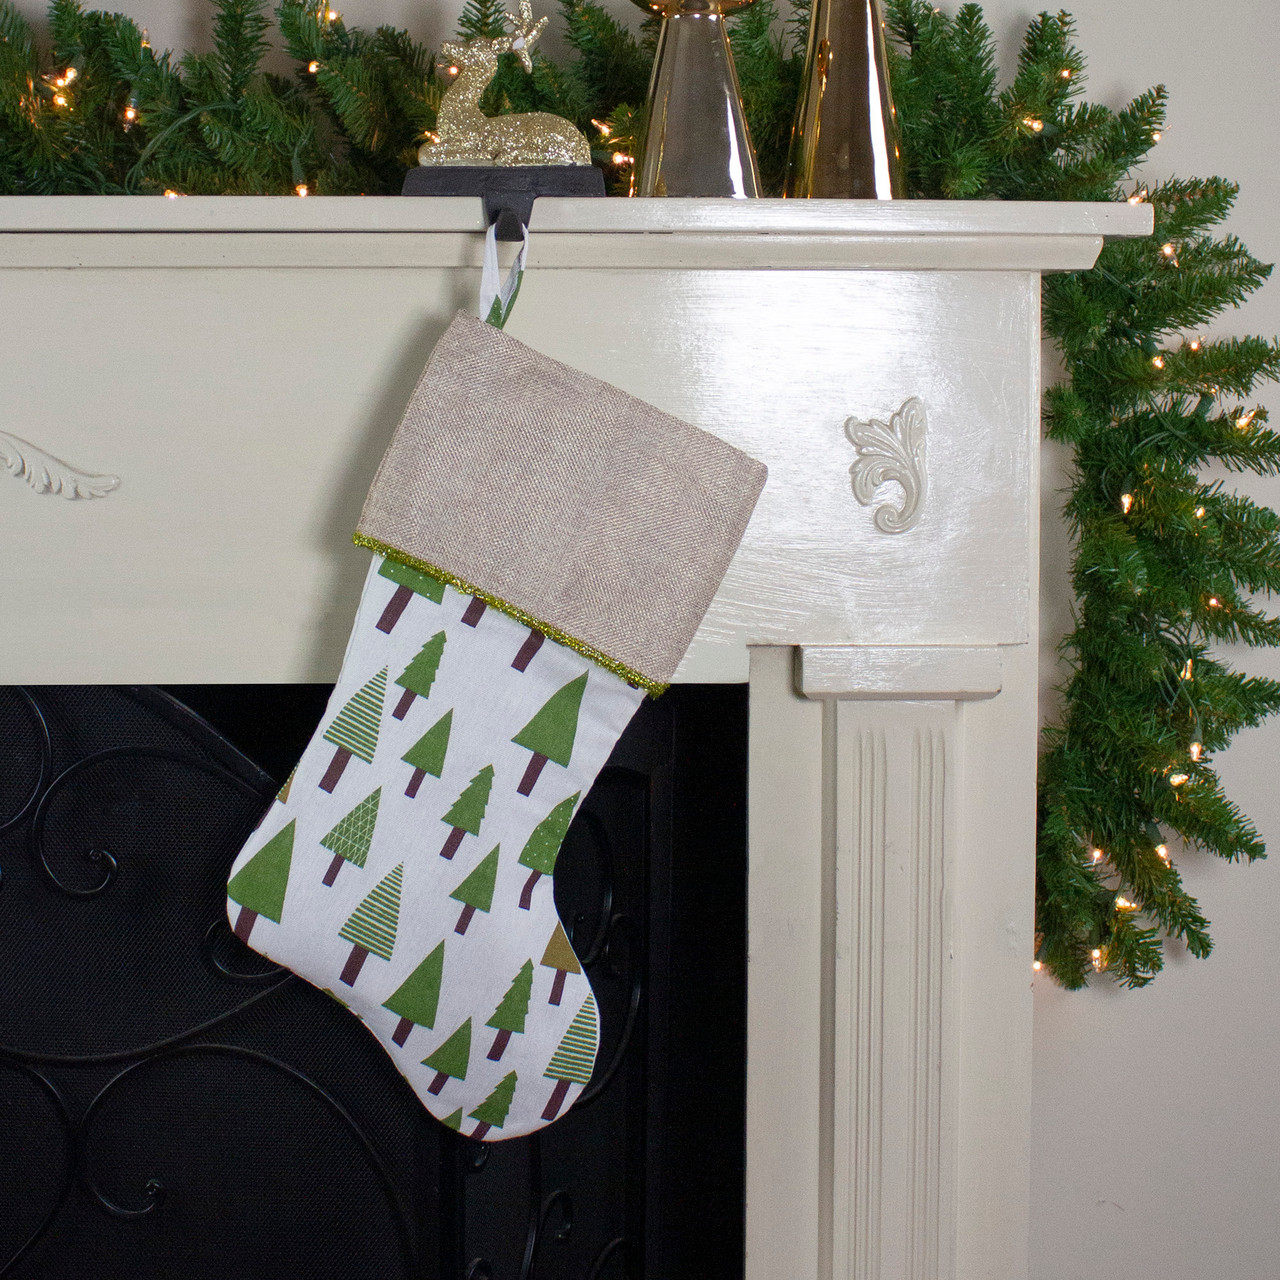 18 Quot Rustic Woodland Christmas Stocking With Green Forest